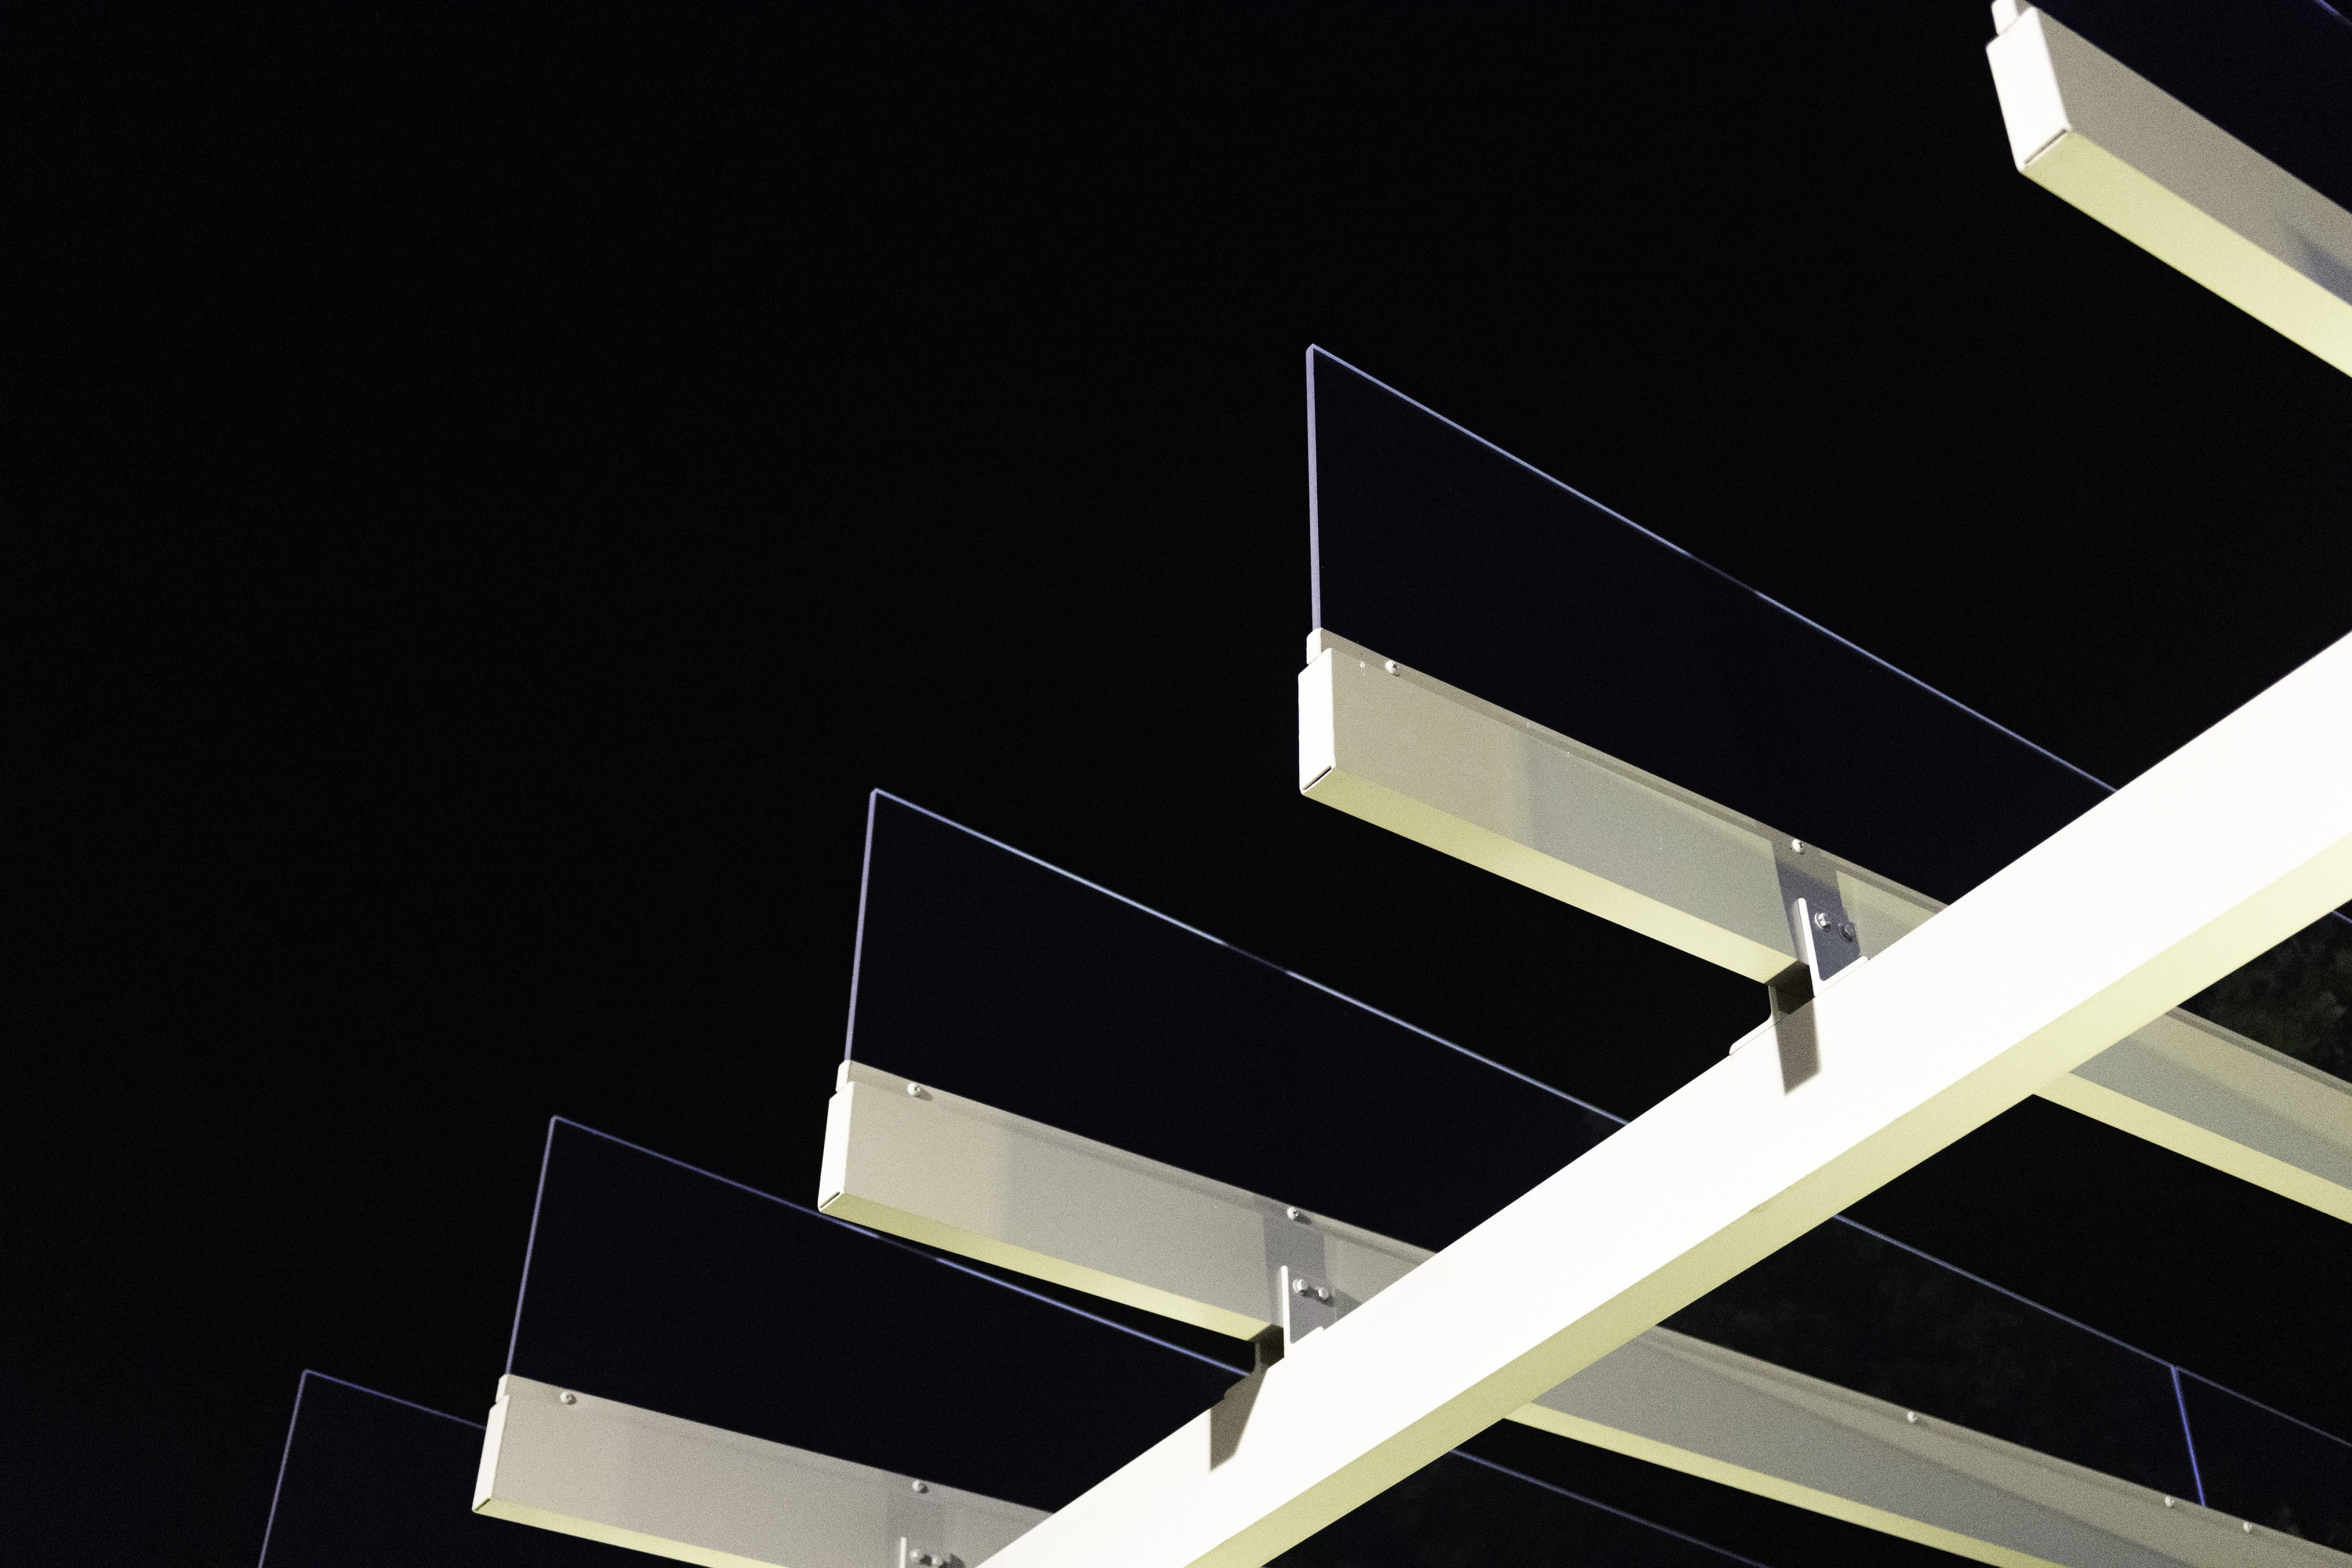 The beige metal and glass rafters of a modern pavilion jut violently into the frame, against a pitch-black sky.